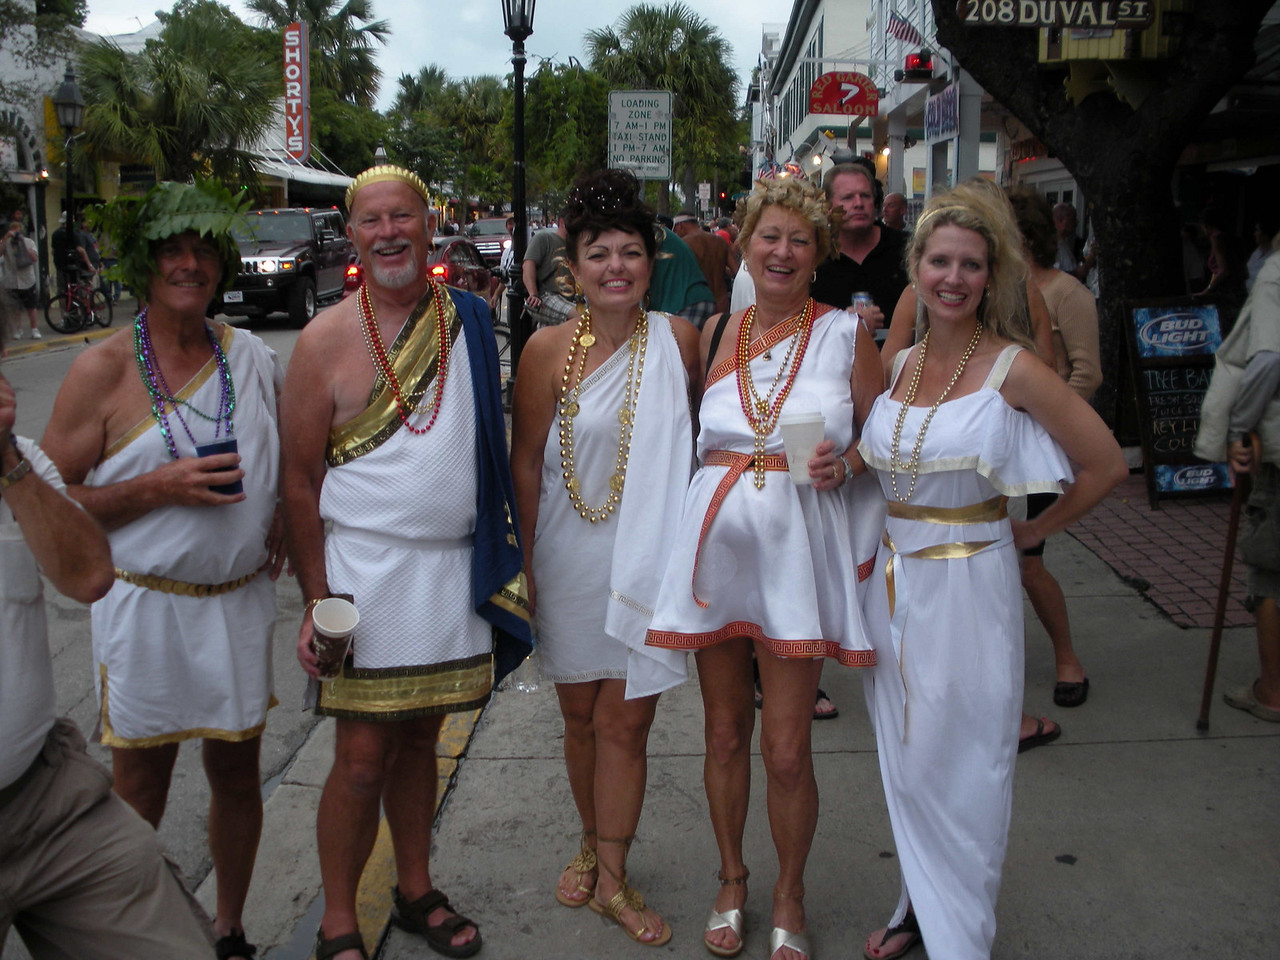 Okay, so there's a toga party, and it's hard to find pirate-themed togas.